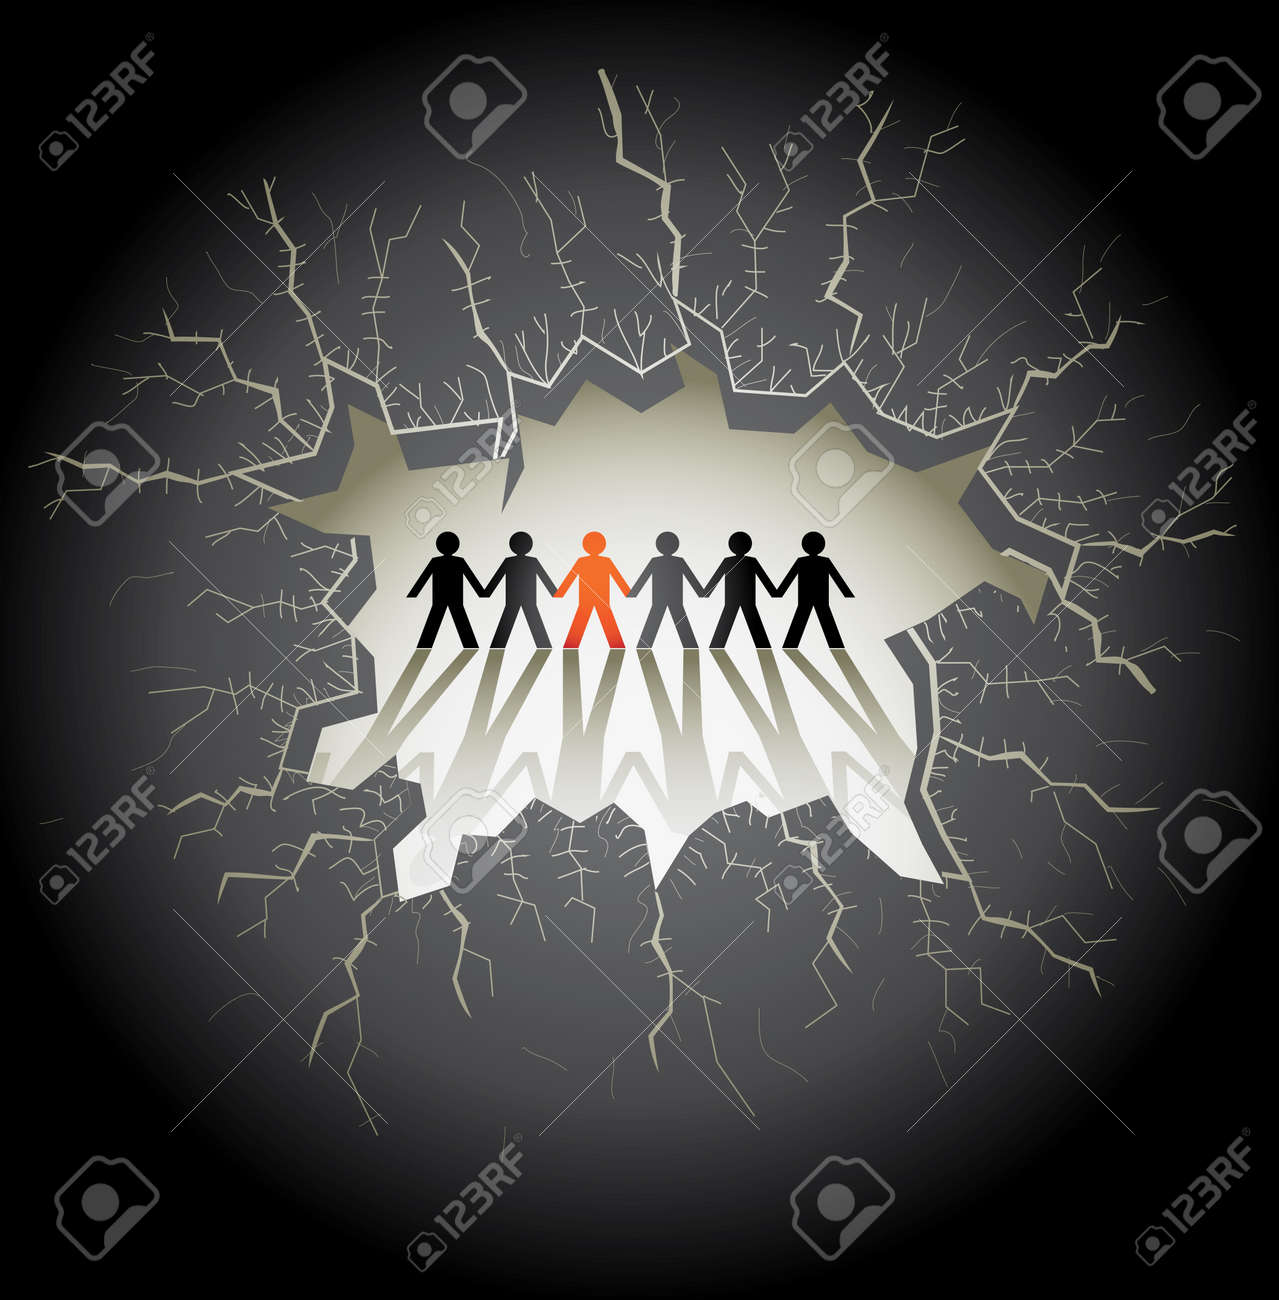 light hole with cracks on a dark background, illustration Stock Vector - 16857759